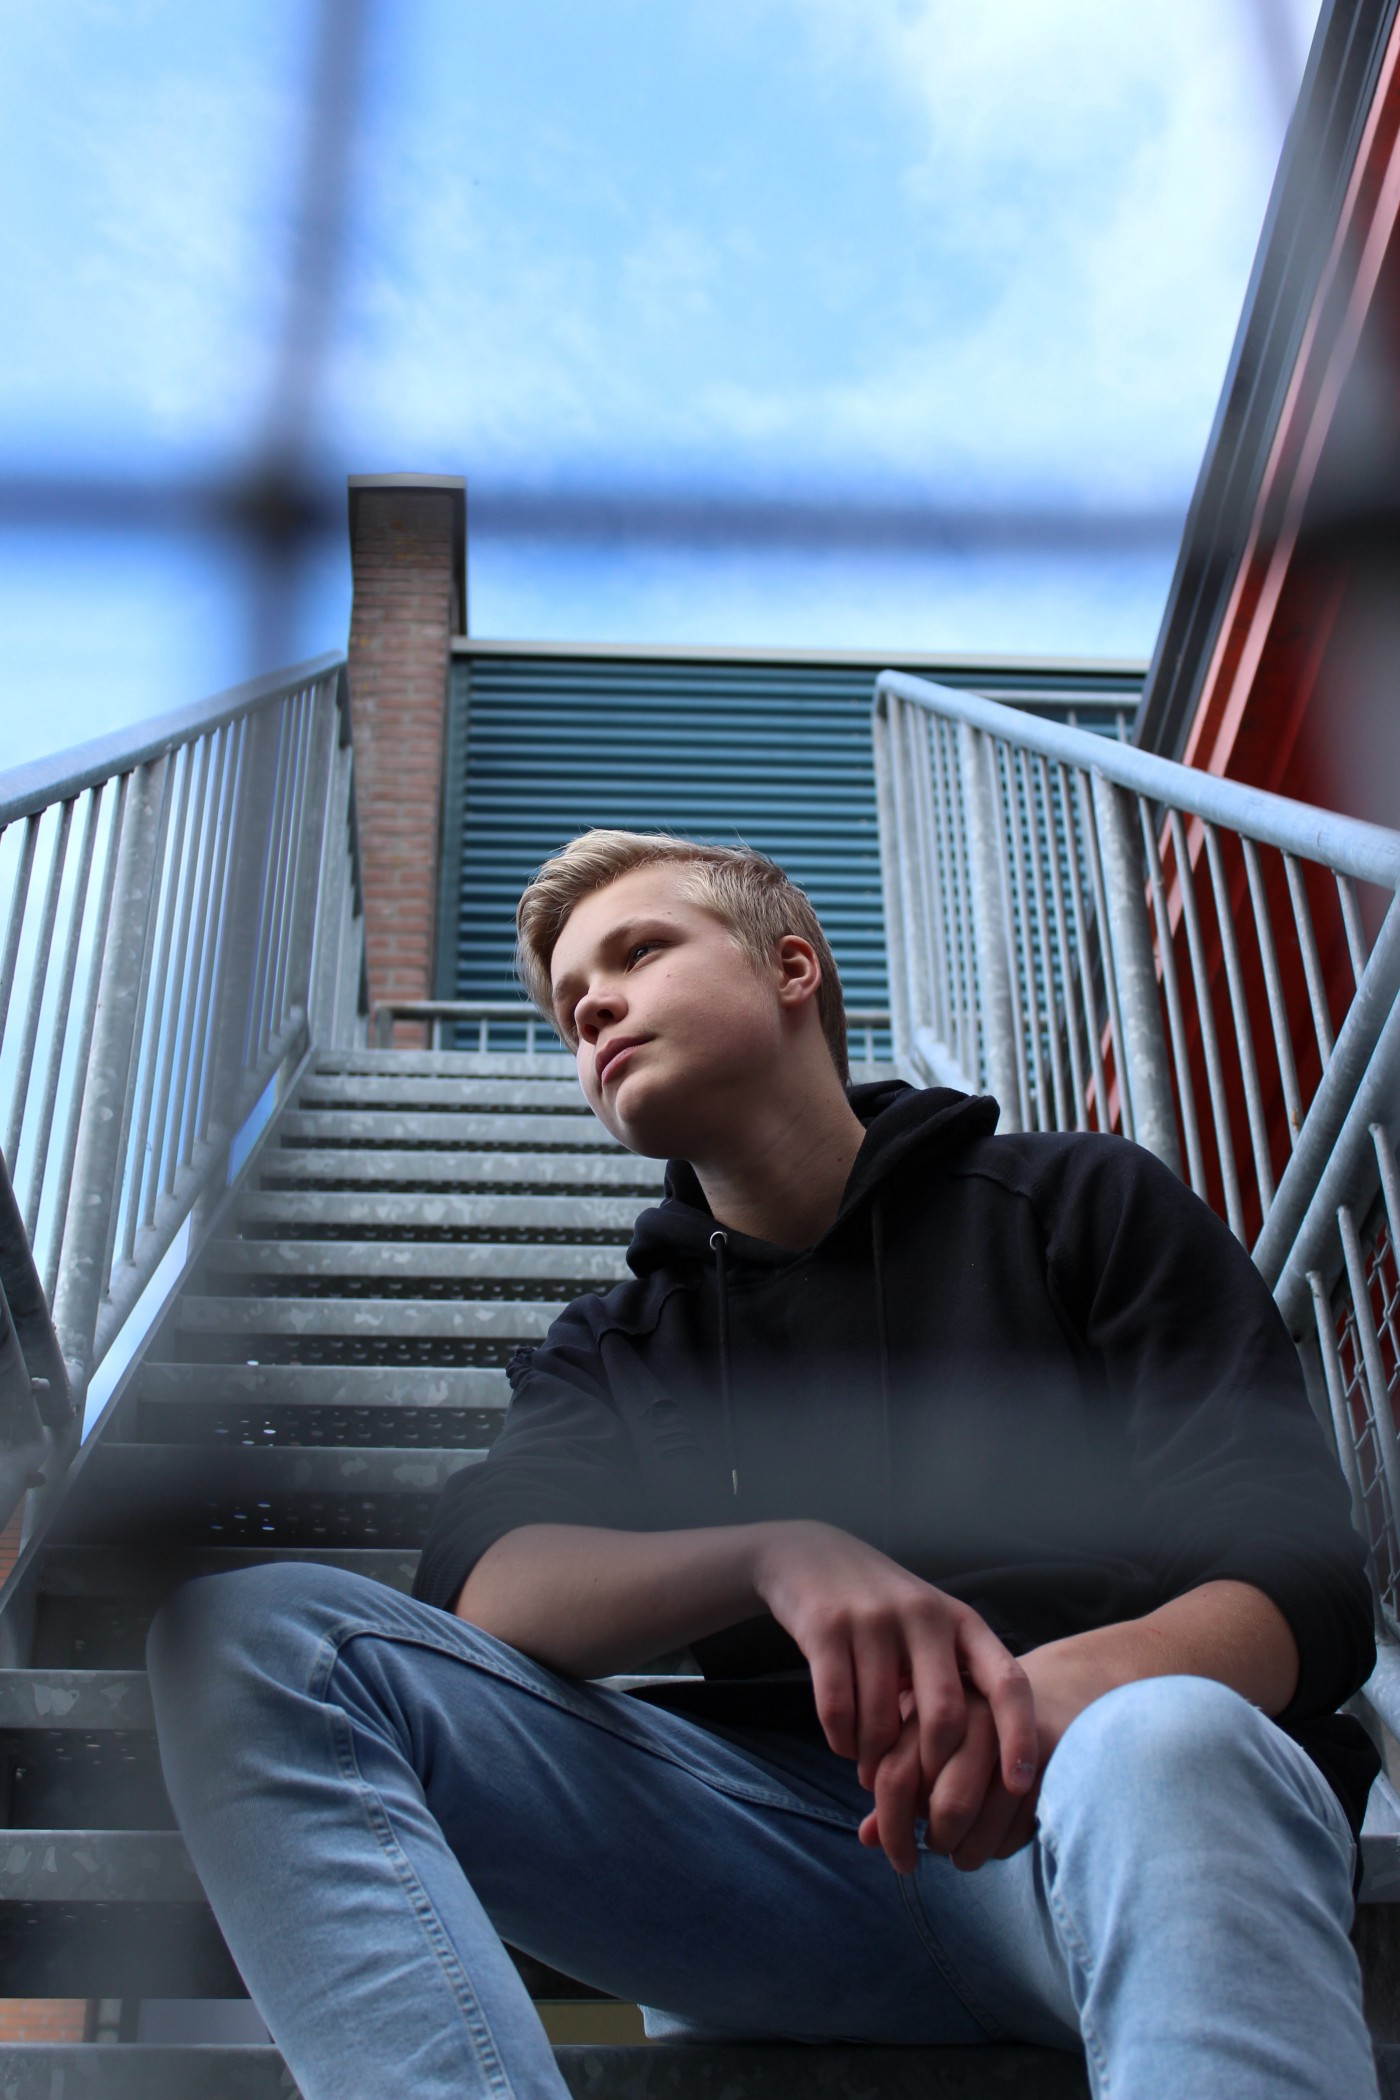 Young blonde boy sitting on concrete stairs.